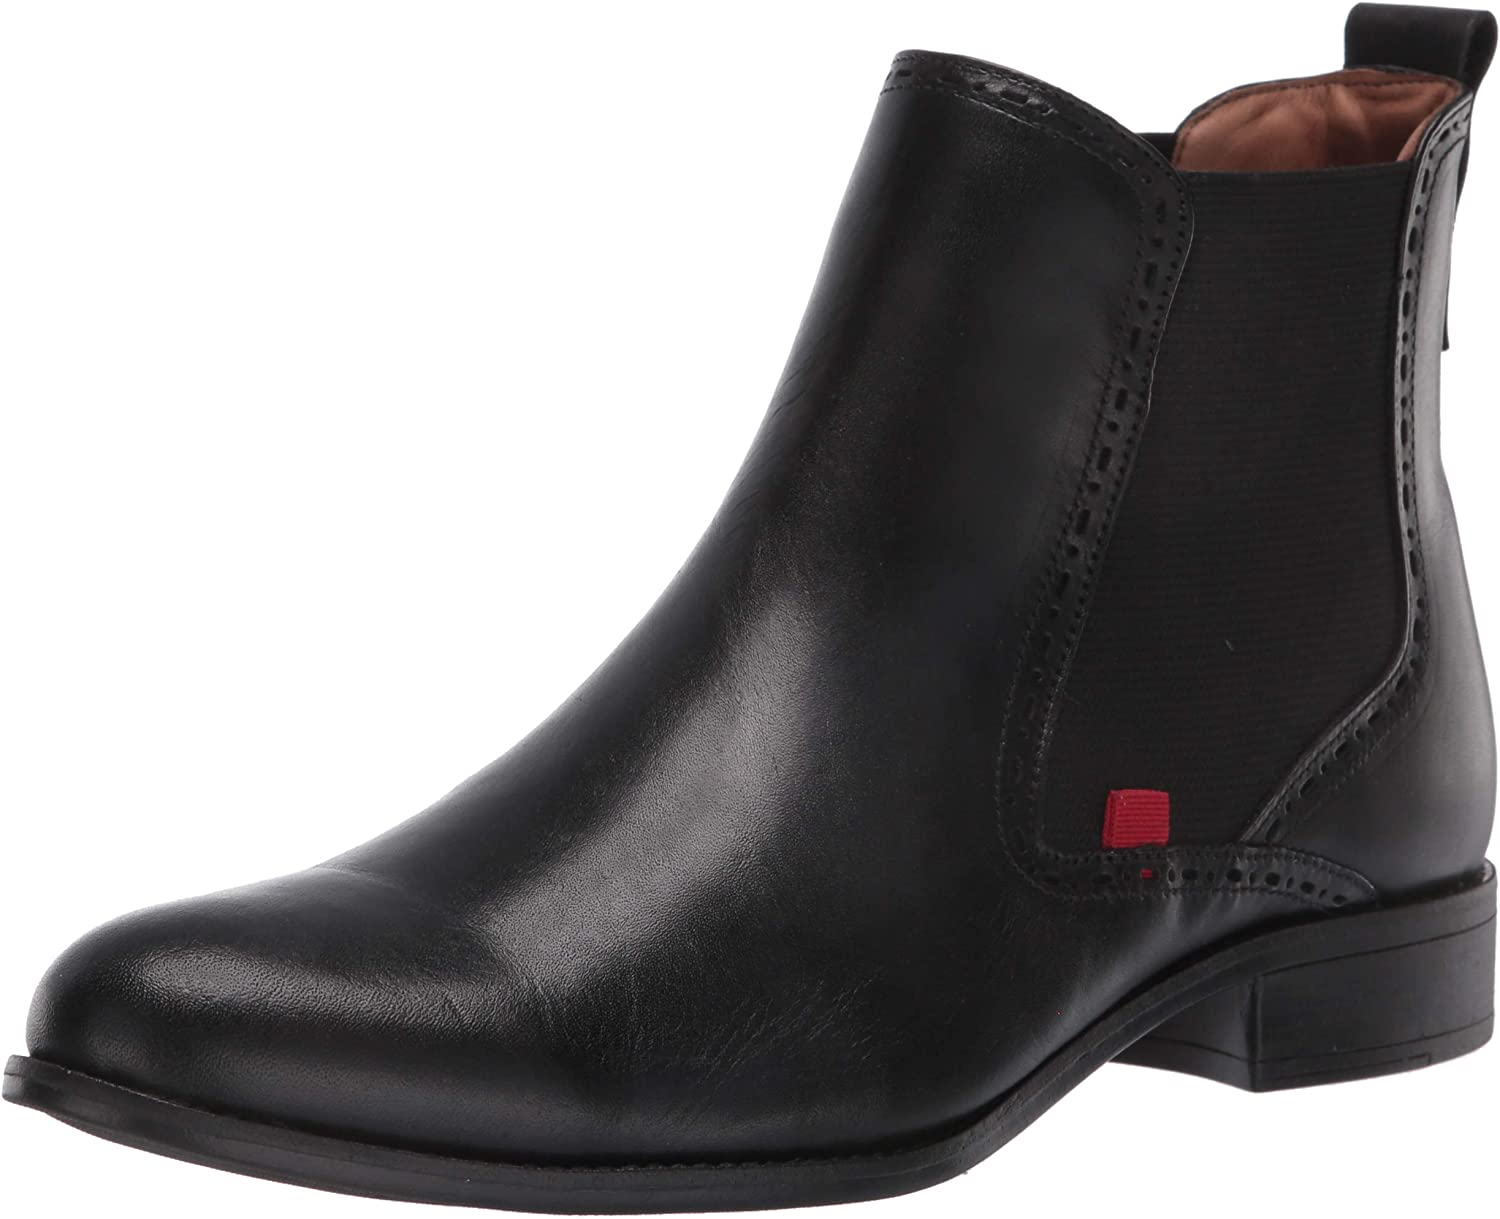 Marc Joseph New York 人気激安 高級 Women's Chelsea Perforate Leather with Boot